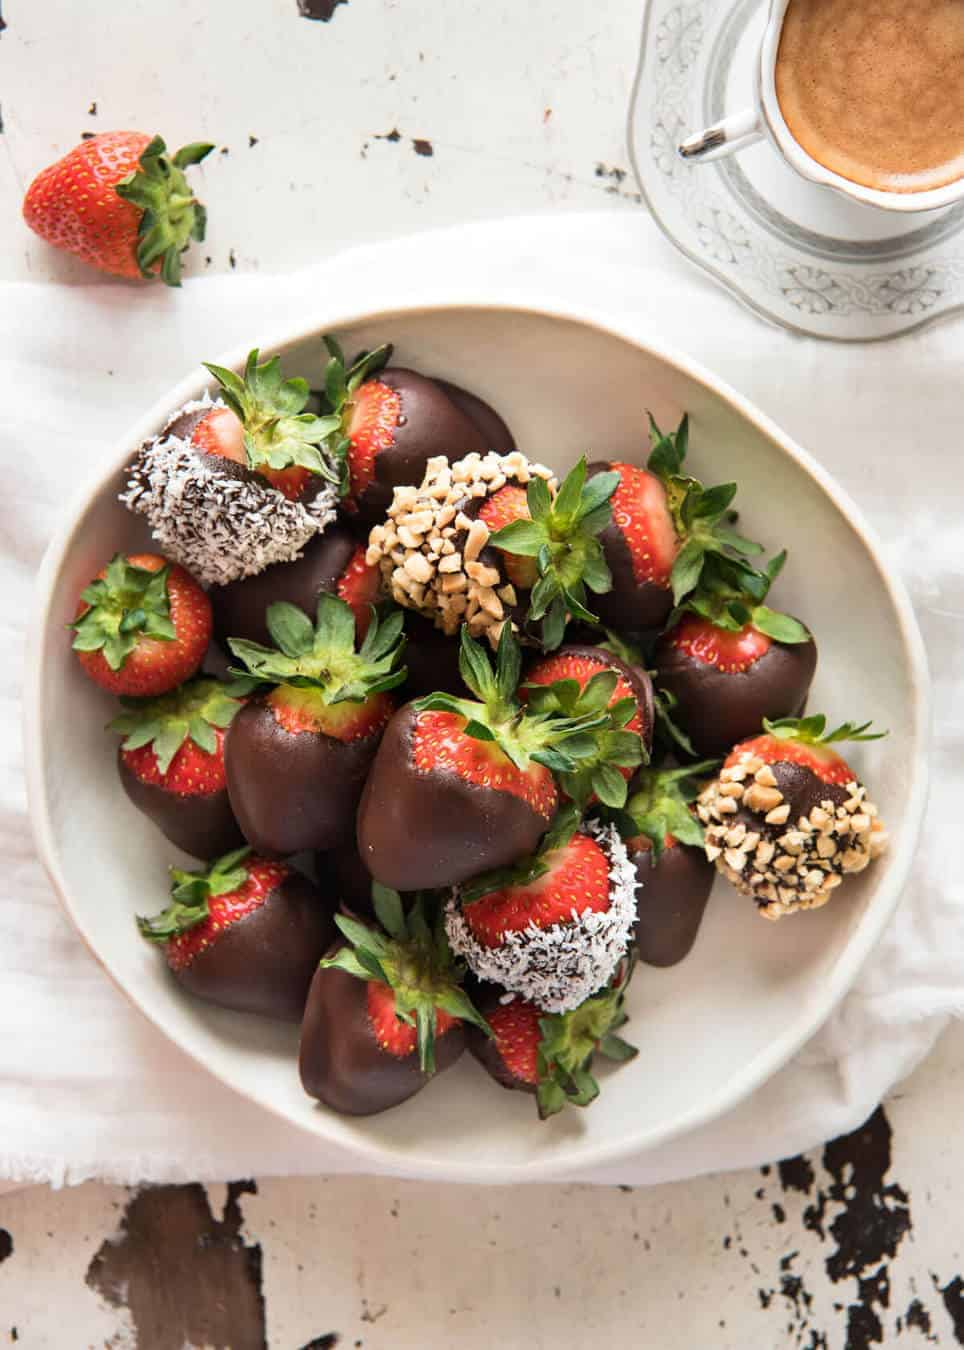 Chocolate Covered Strawberries | RecipeTin Eats